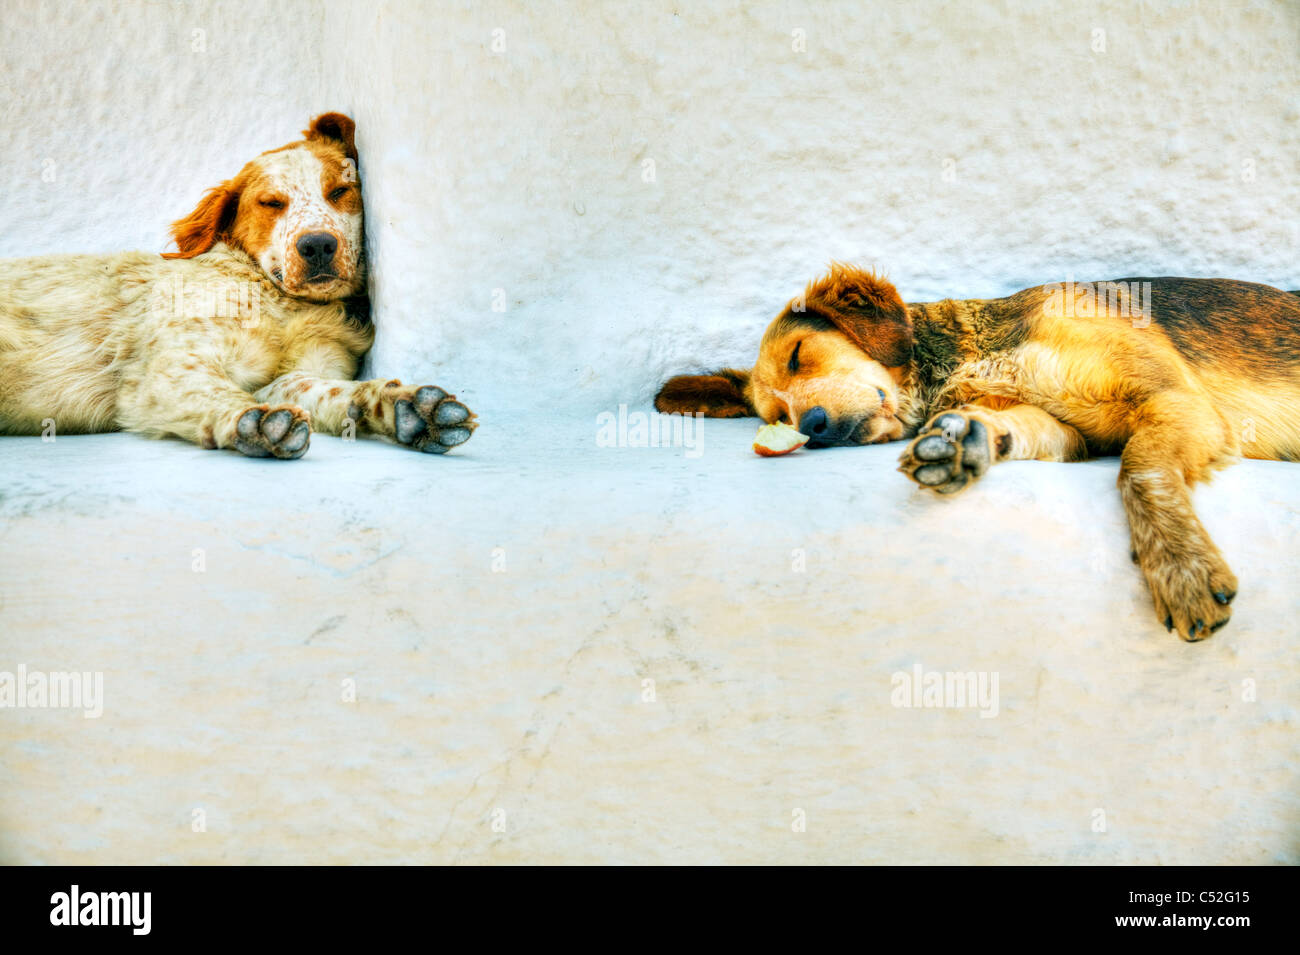 Thira on iconic Greek island of Santorini, typical Greece, two old dogs sleep in midday heat tired and sleepy - Stock Image